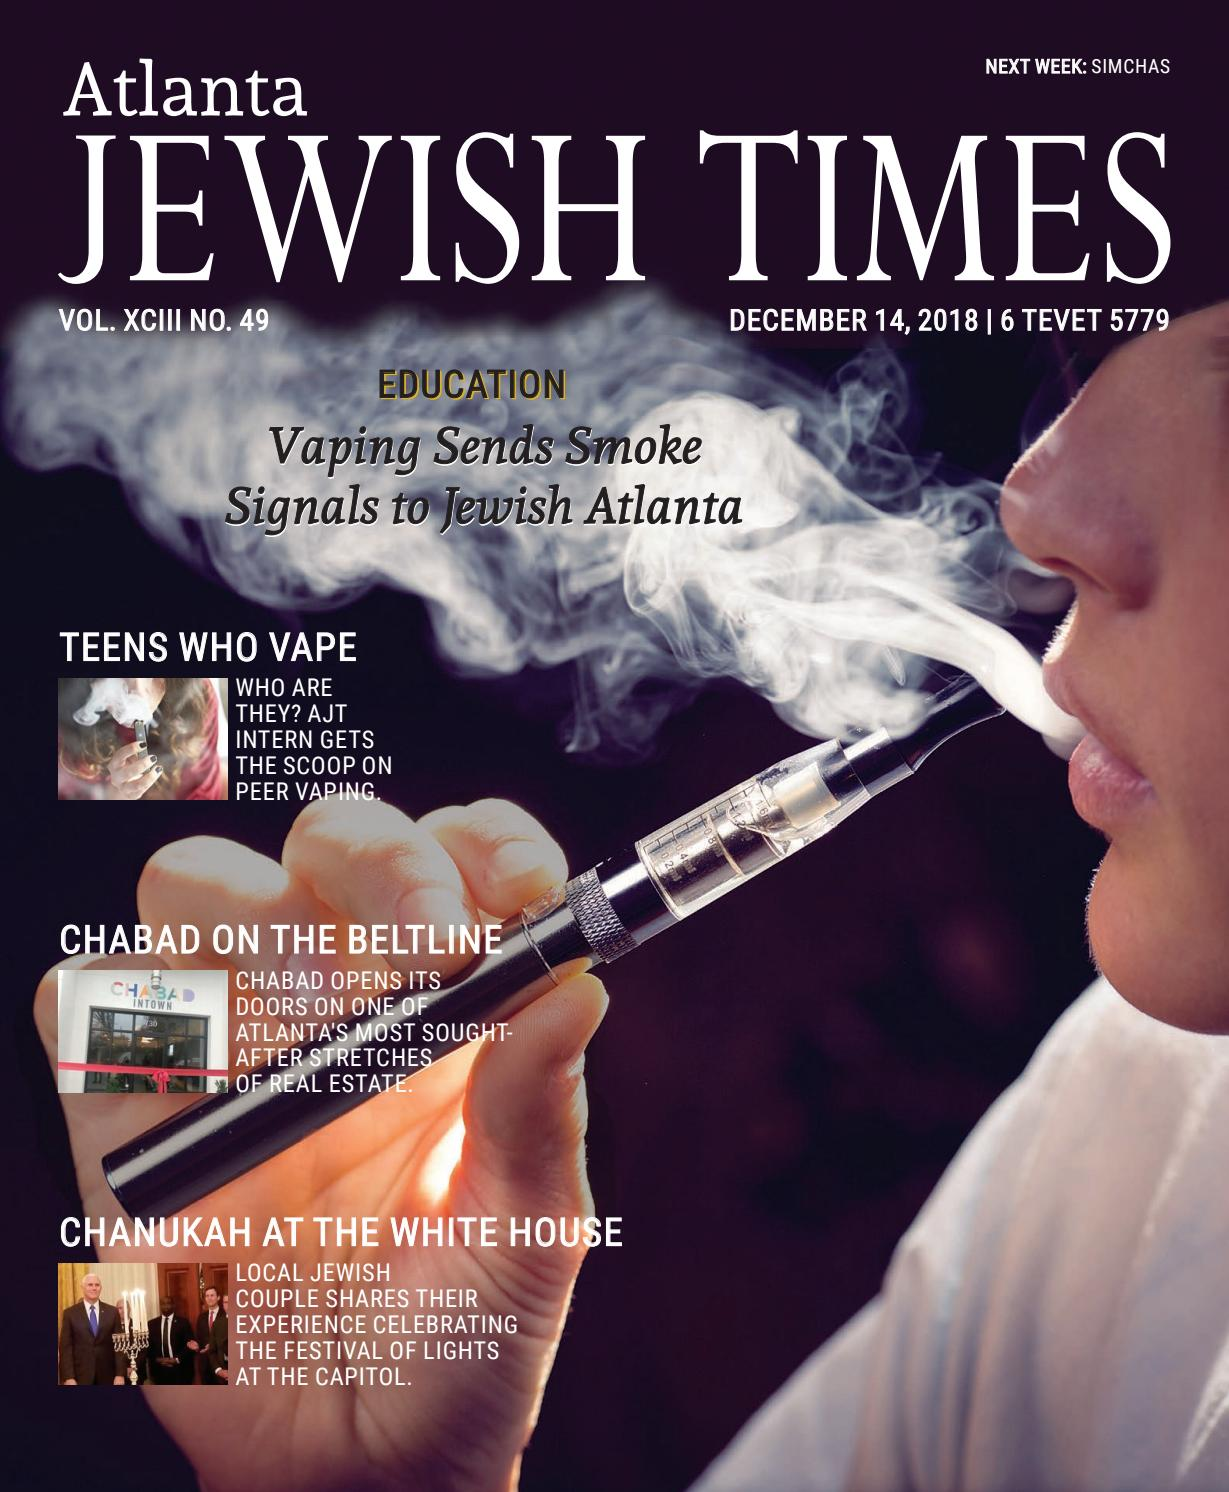 how to make er diagram amazing s musician record online home decorating services Atlanta Jewish Times, Vol. XCIII No. 49, December 14, 2018 by Atlanta  Jewish Times - issuu